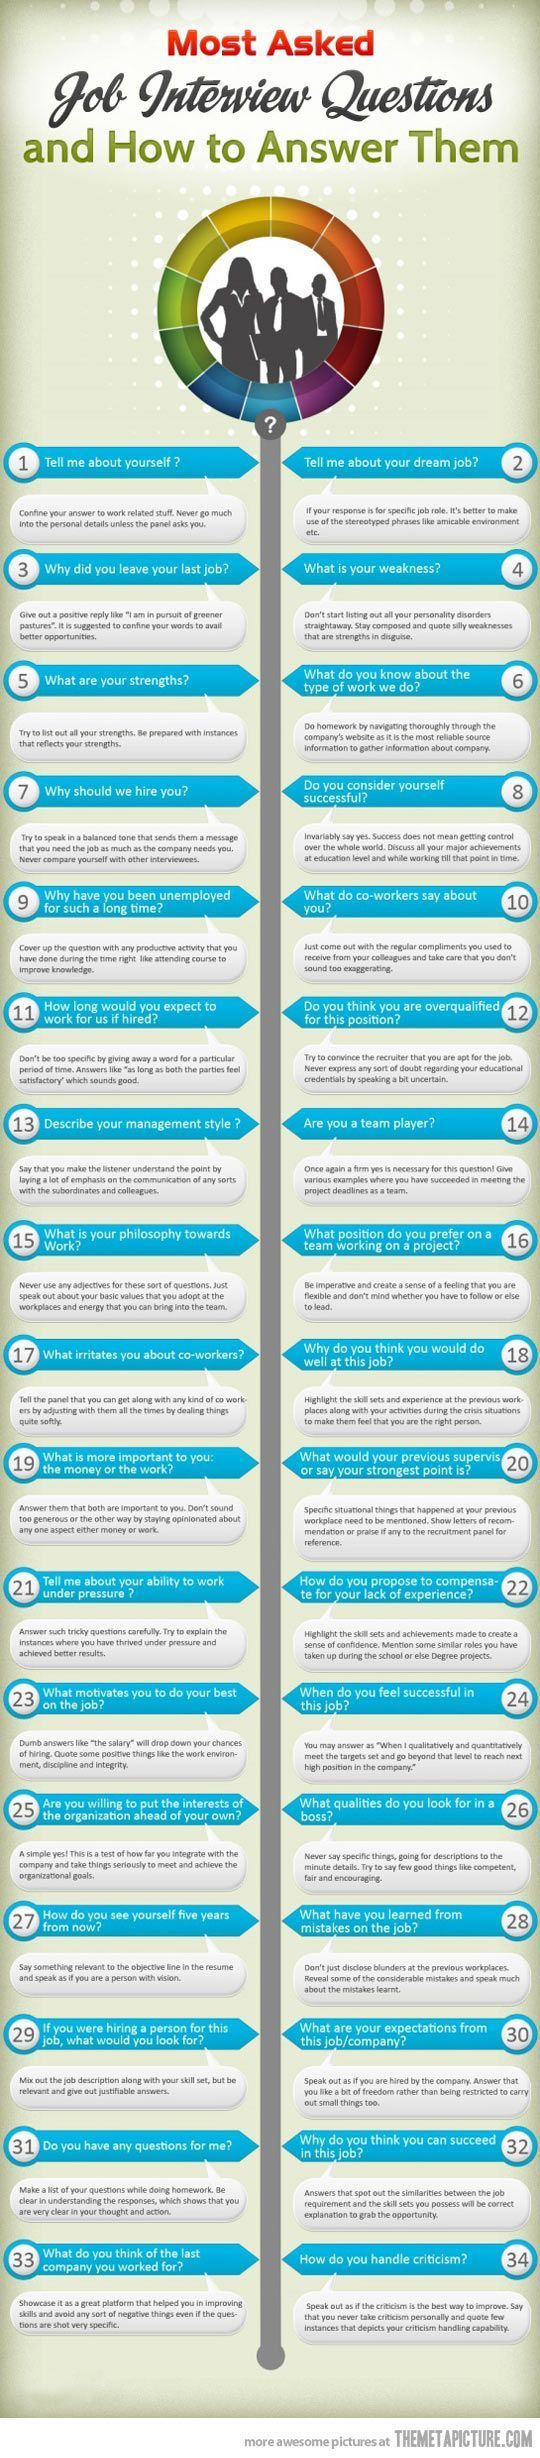 how to answer the most asked job interview questions - Mock Interview Questions Job Interview Videos Practicing